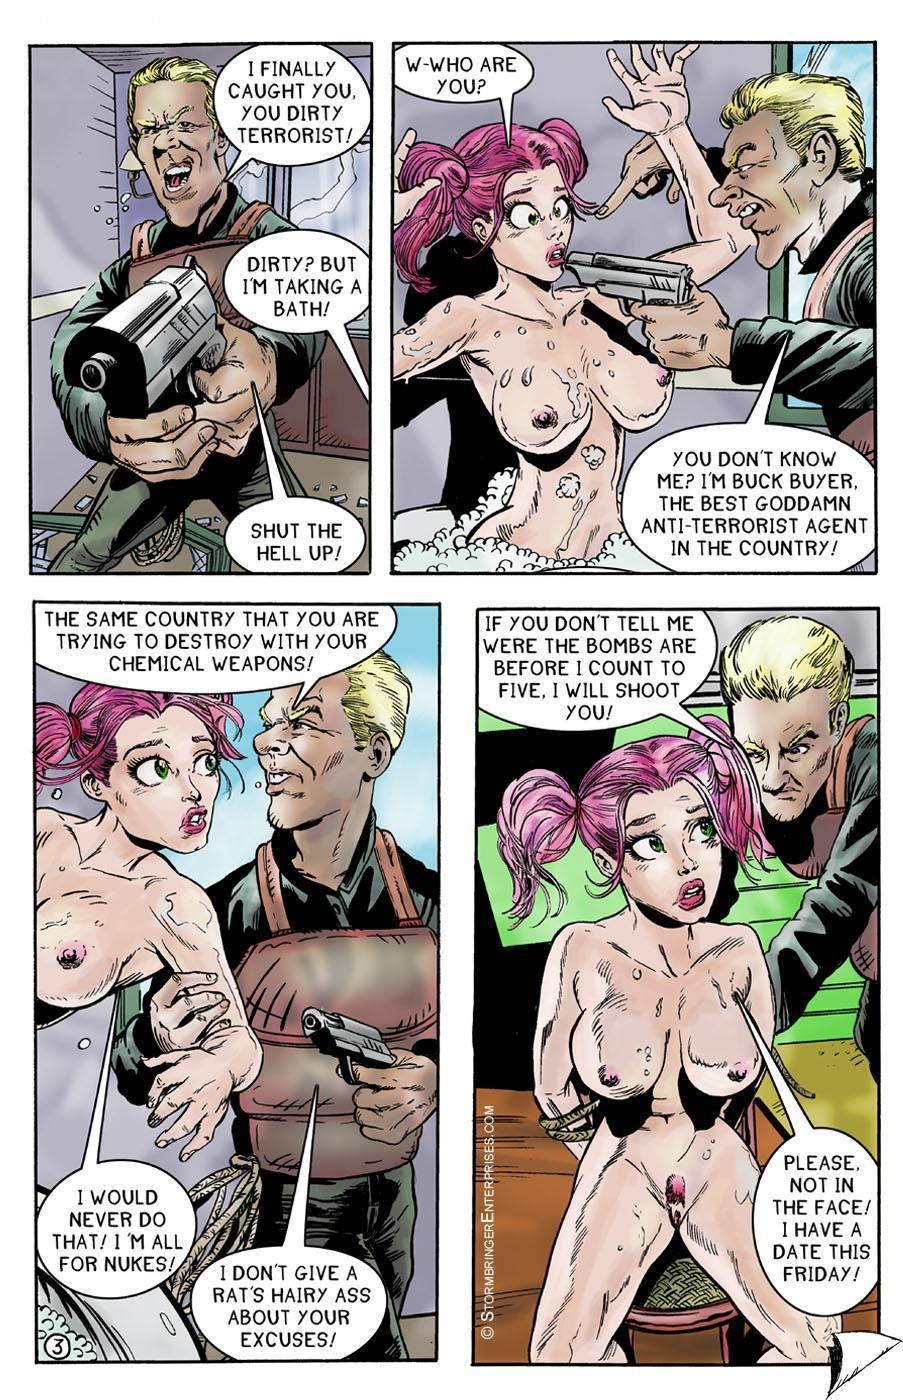 Erotic Adventures of Candice 01-18105 free sex comic